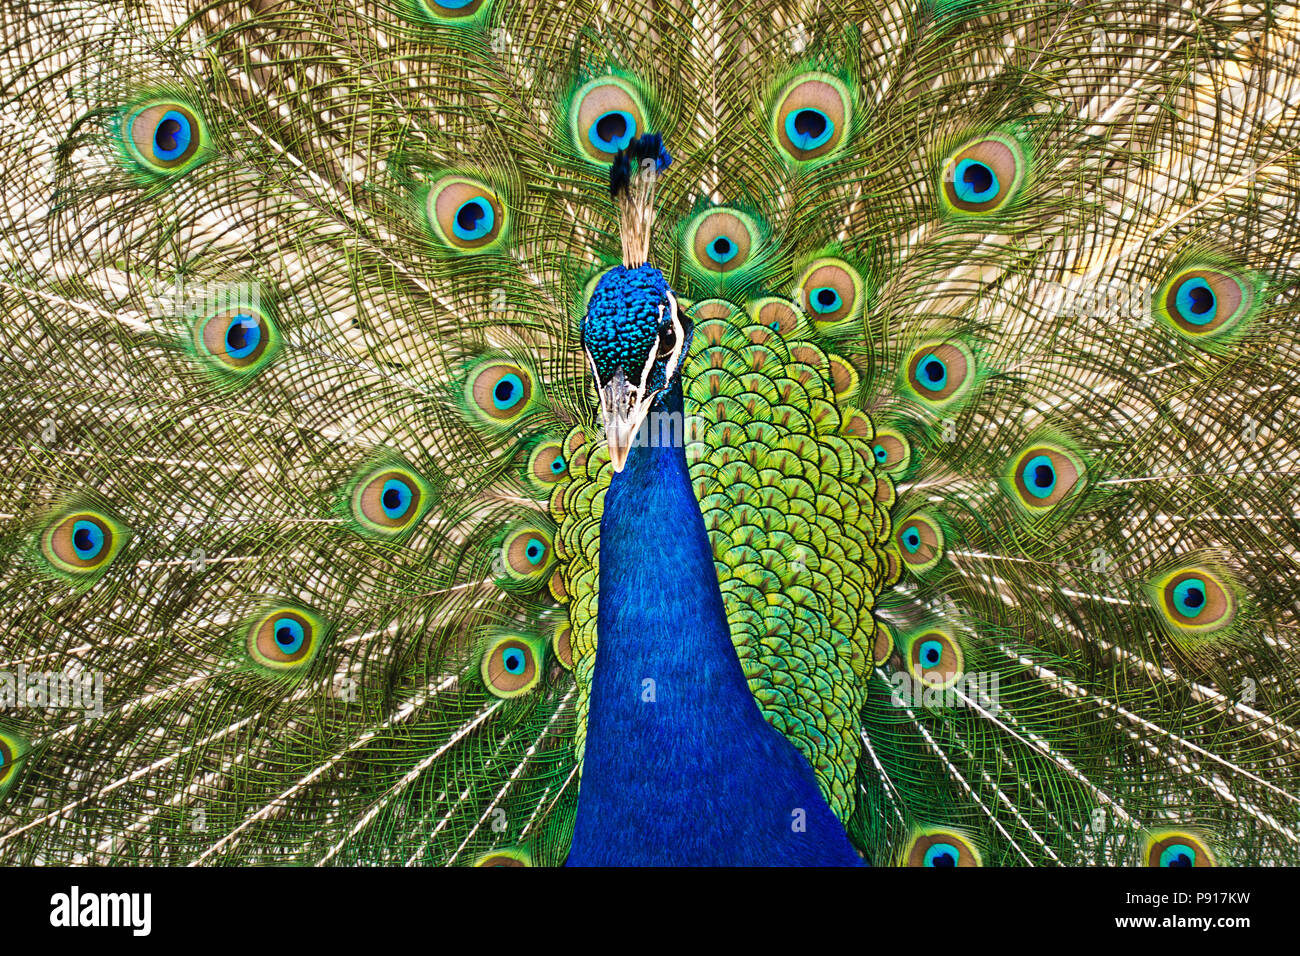 male Indian peafowl - Pavo cristatus displaying his tail - Stock Image